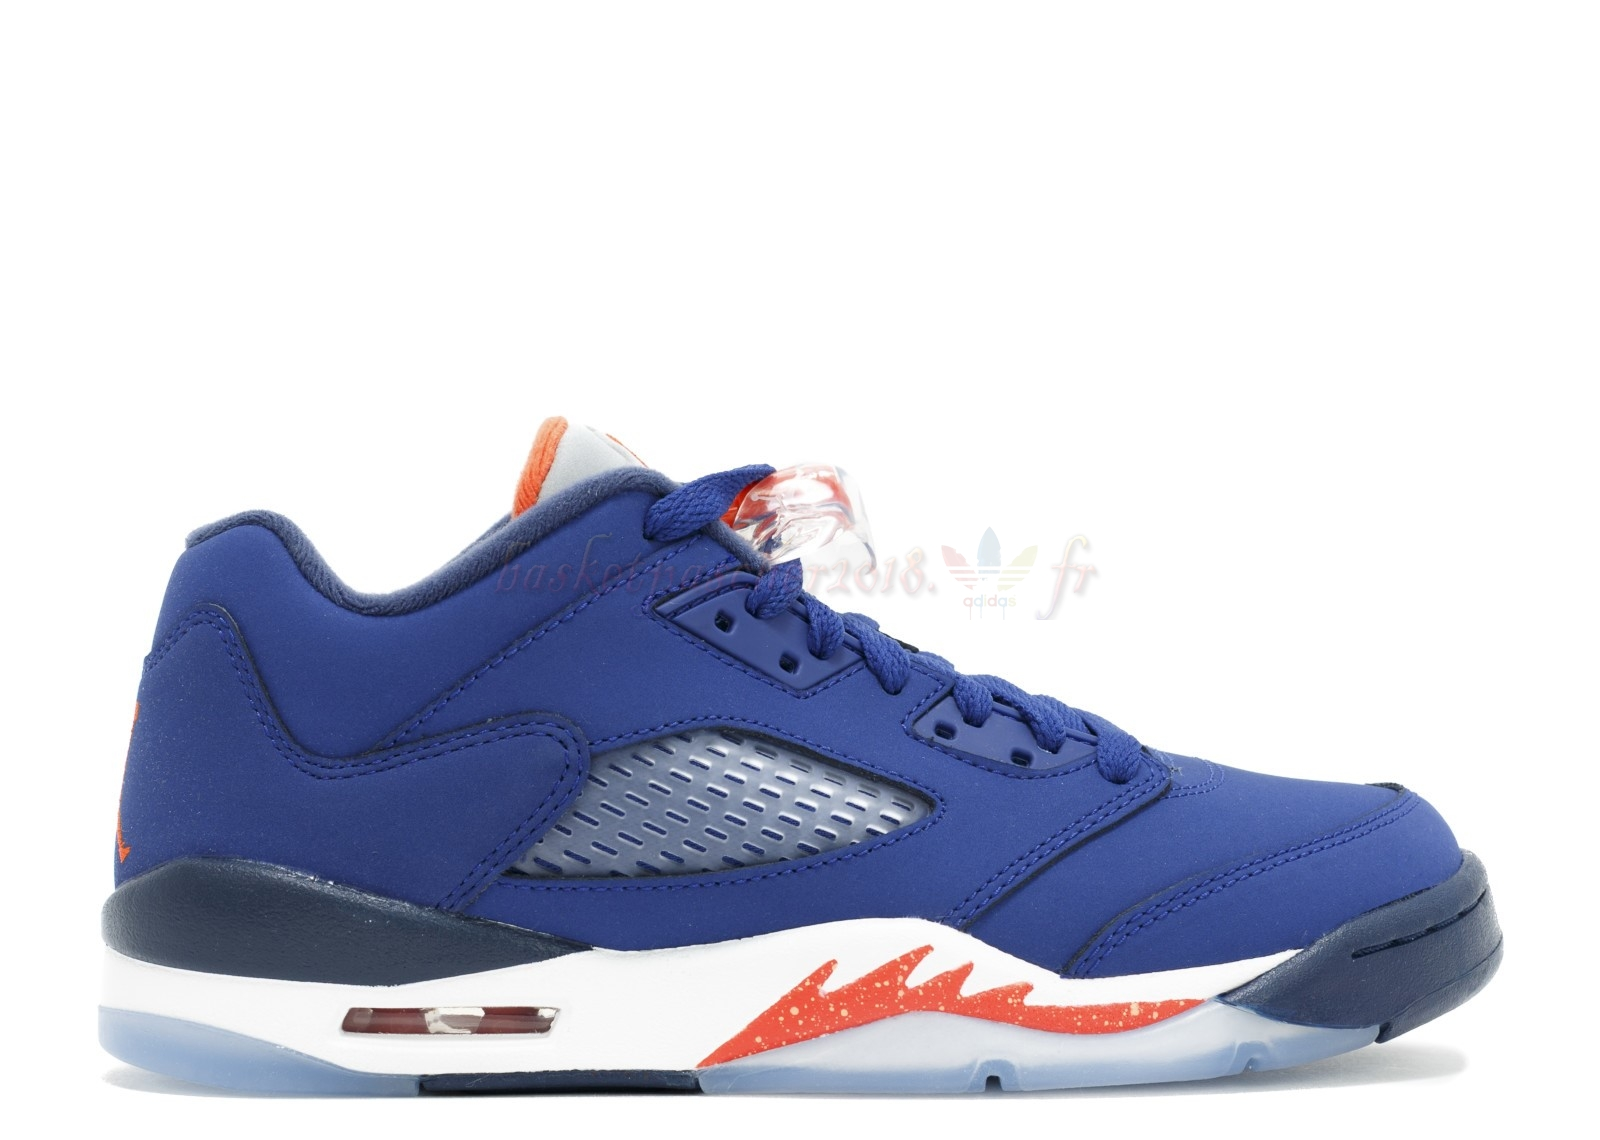 "Vente Chaude Chaussures De Basketball Femme Air Jordan 5 Retro Low (Gs) ""Knicks"" Bleu Orange (314338-417) Pas Cher"